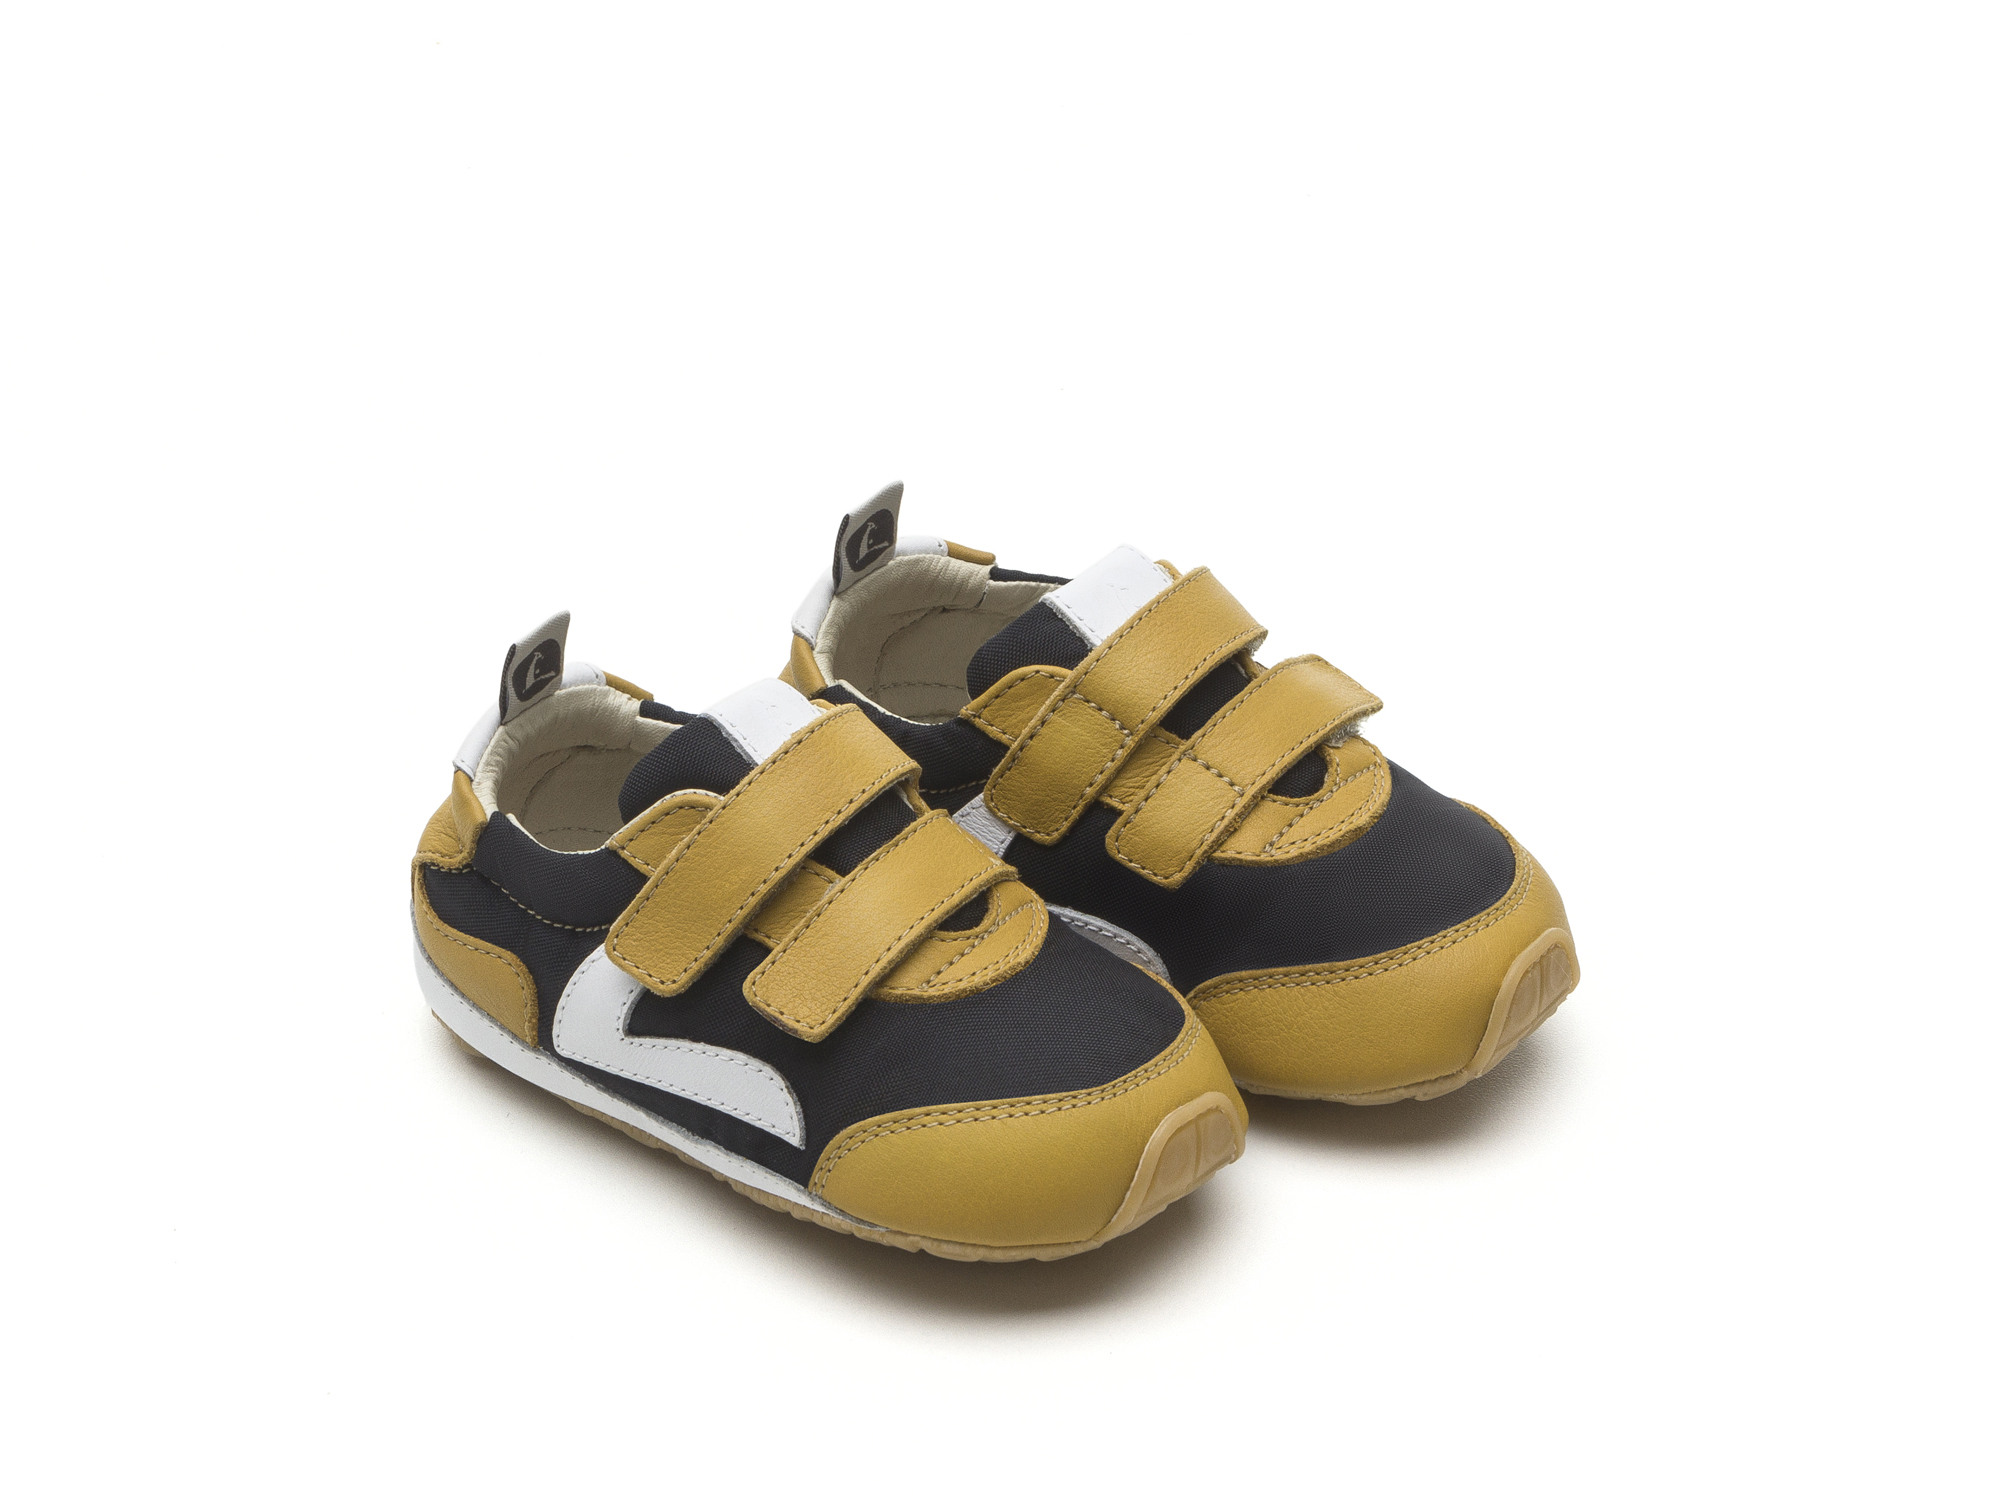 Tênis Jumpy Black Nylon/ Yellow Blur Baby for ages 0 to 2 years - 0